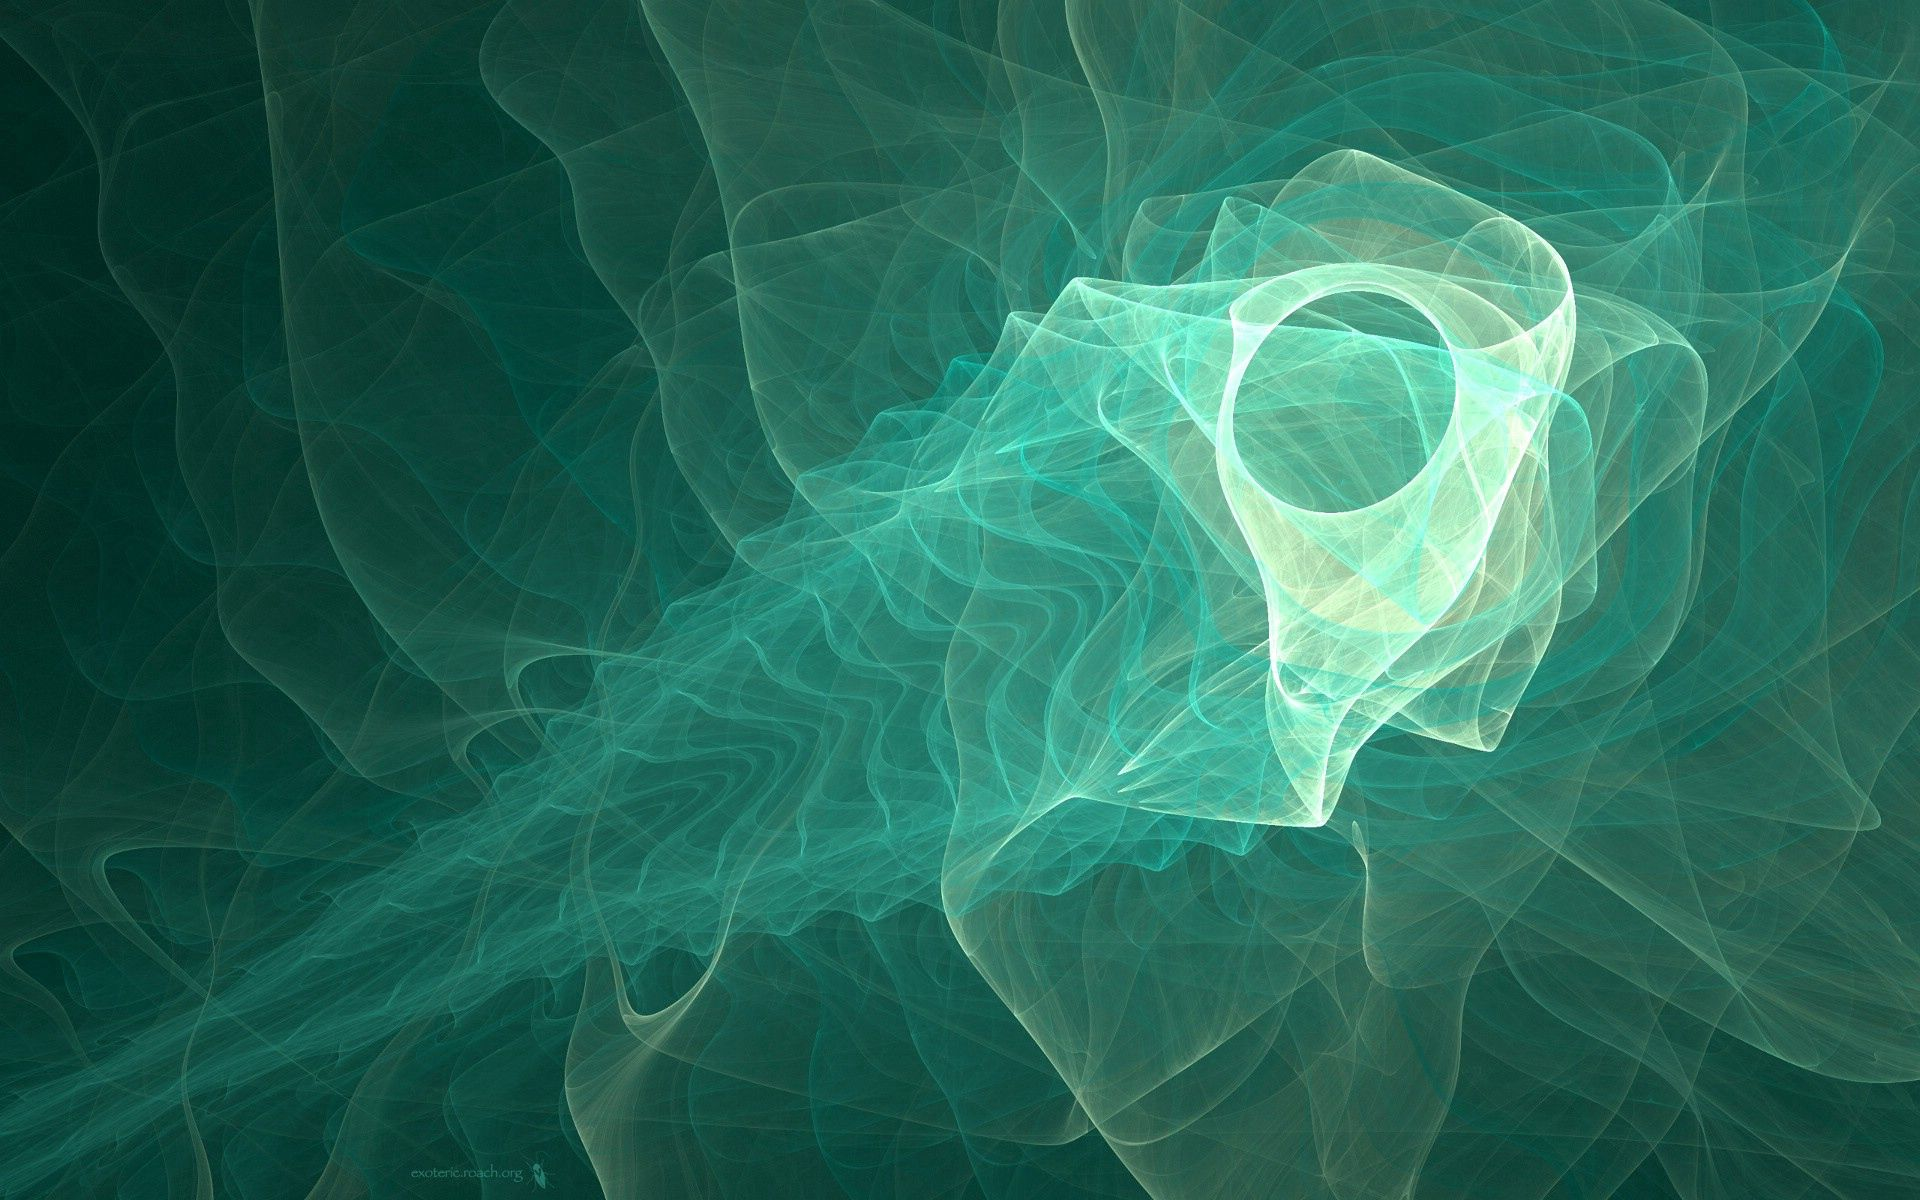 97349 download wallpaper Abstract, Fractal, Form, Bone, Ribbed, Smoke screensavers and pictures for free